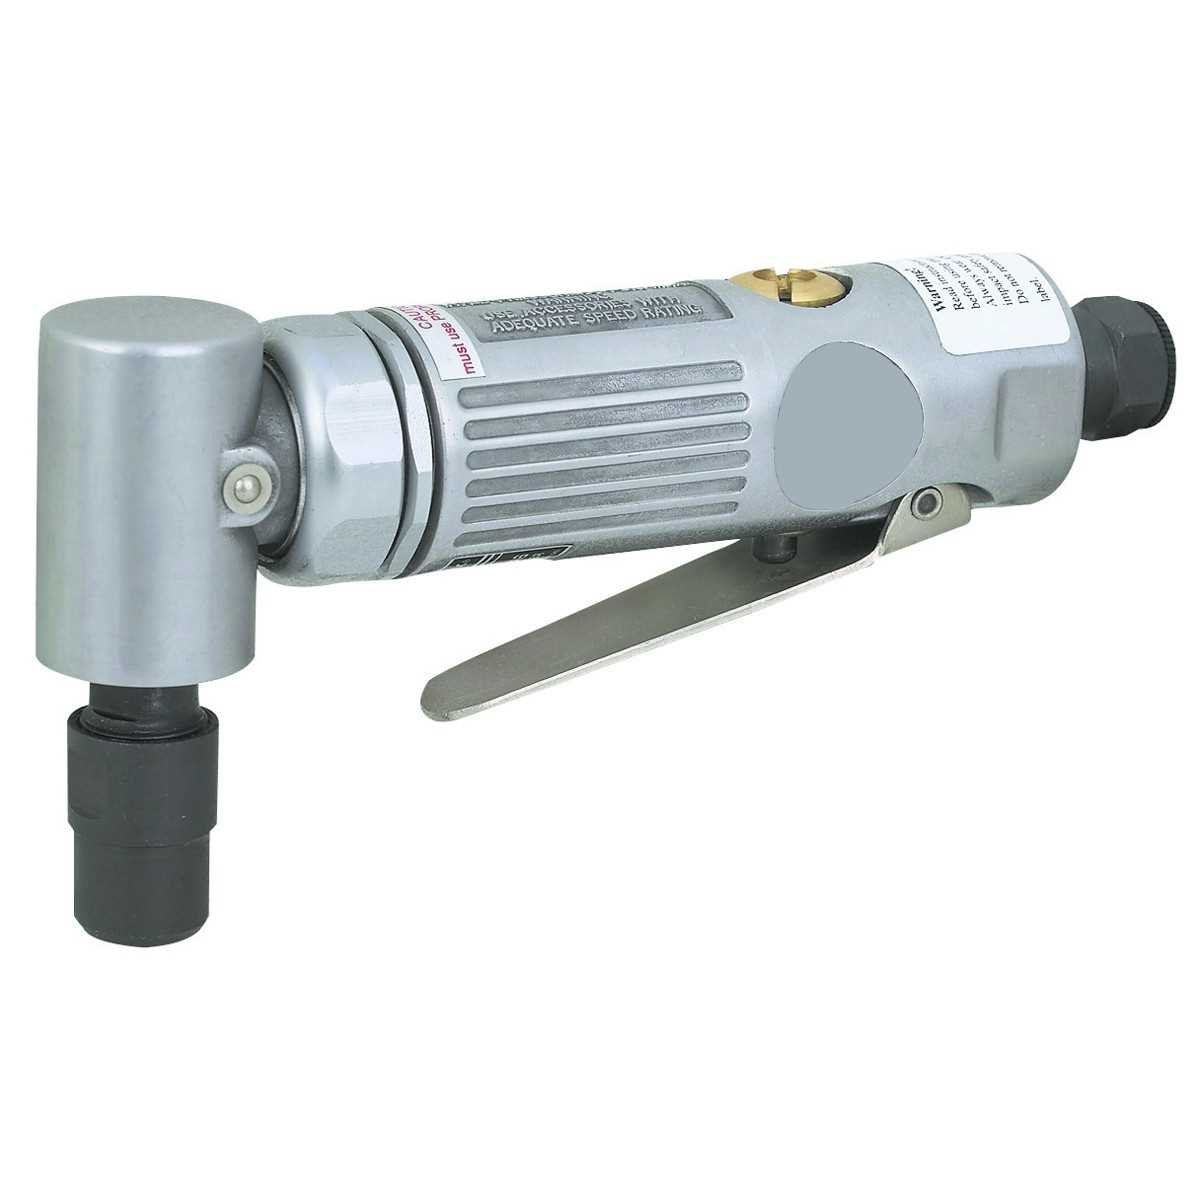 Air Angle Die Grinder Central Pneumatic